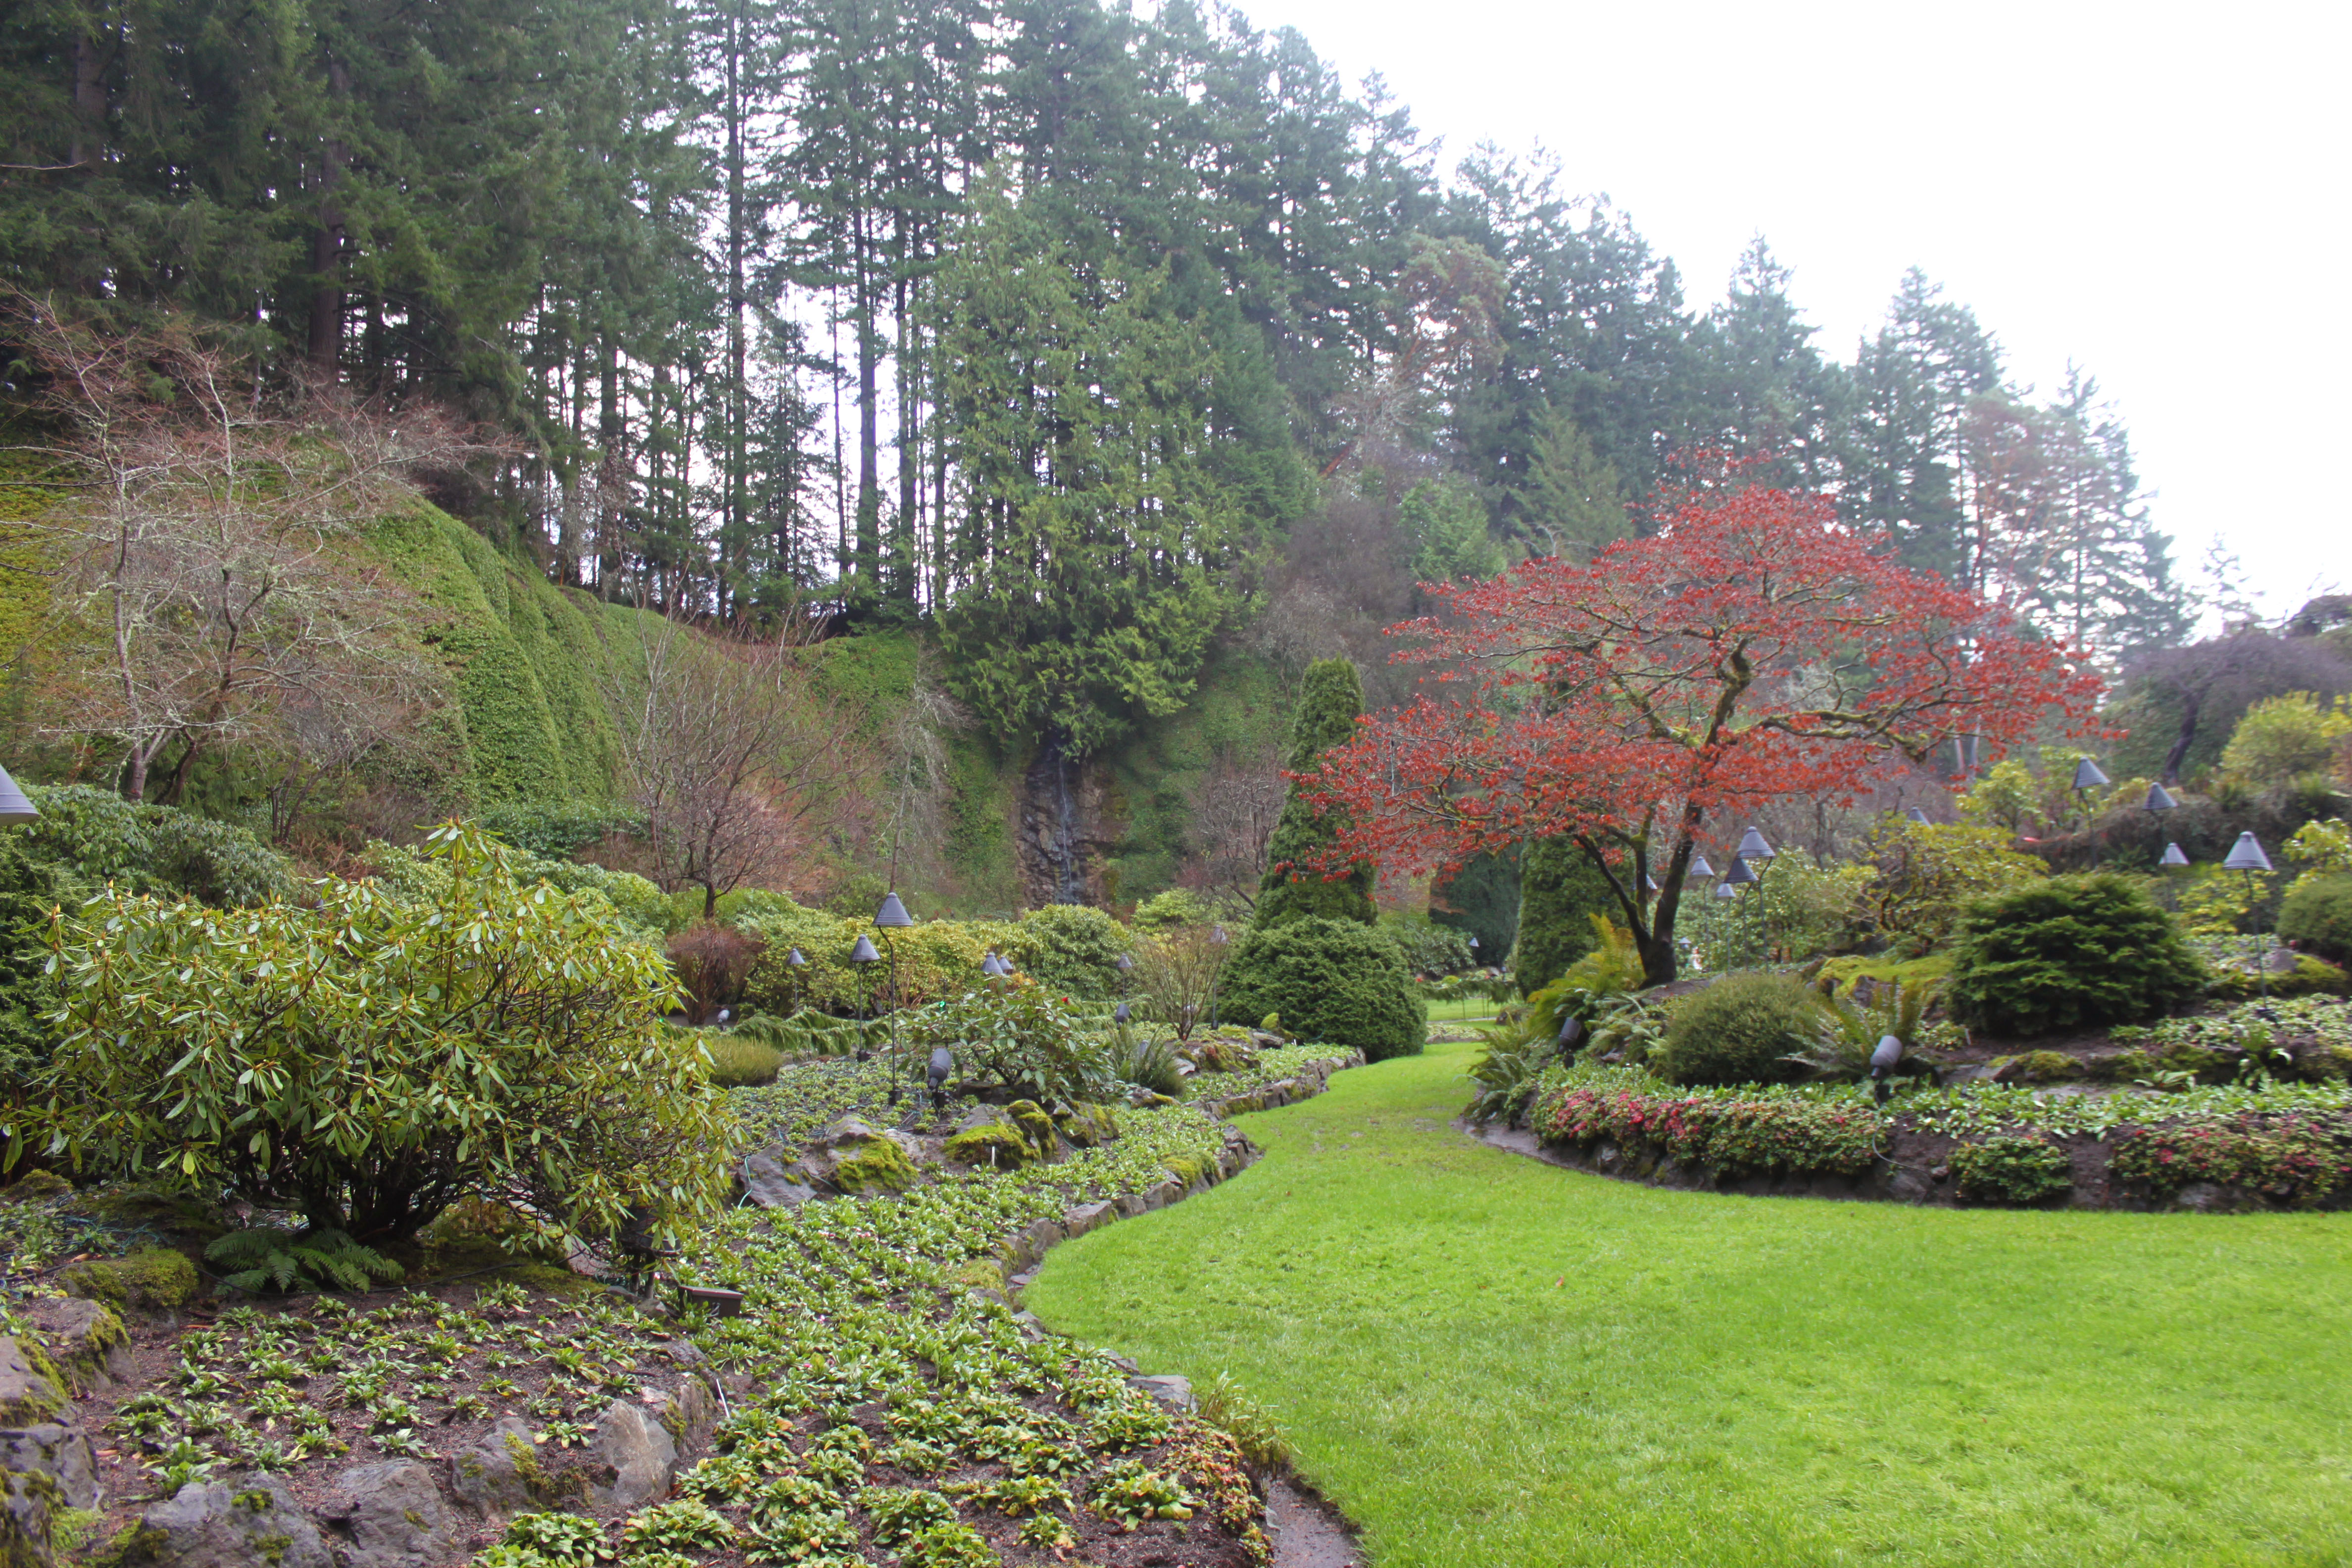 Our trip to canada part 2 the butchart gardens - Best time to visit butchart gardens ...